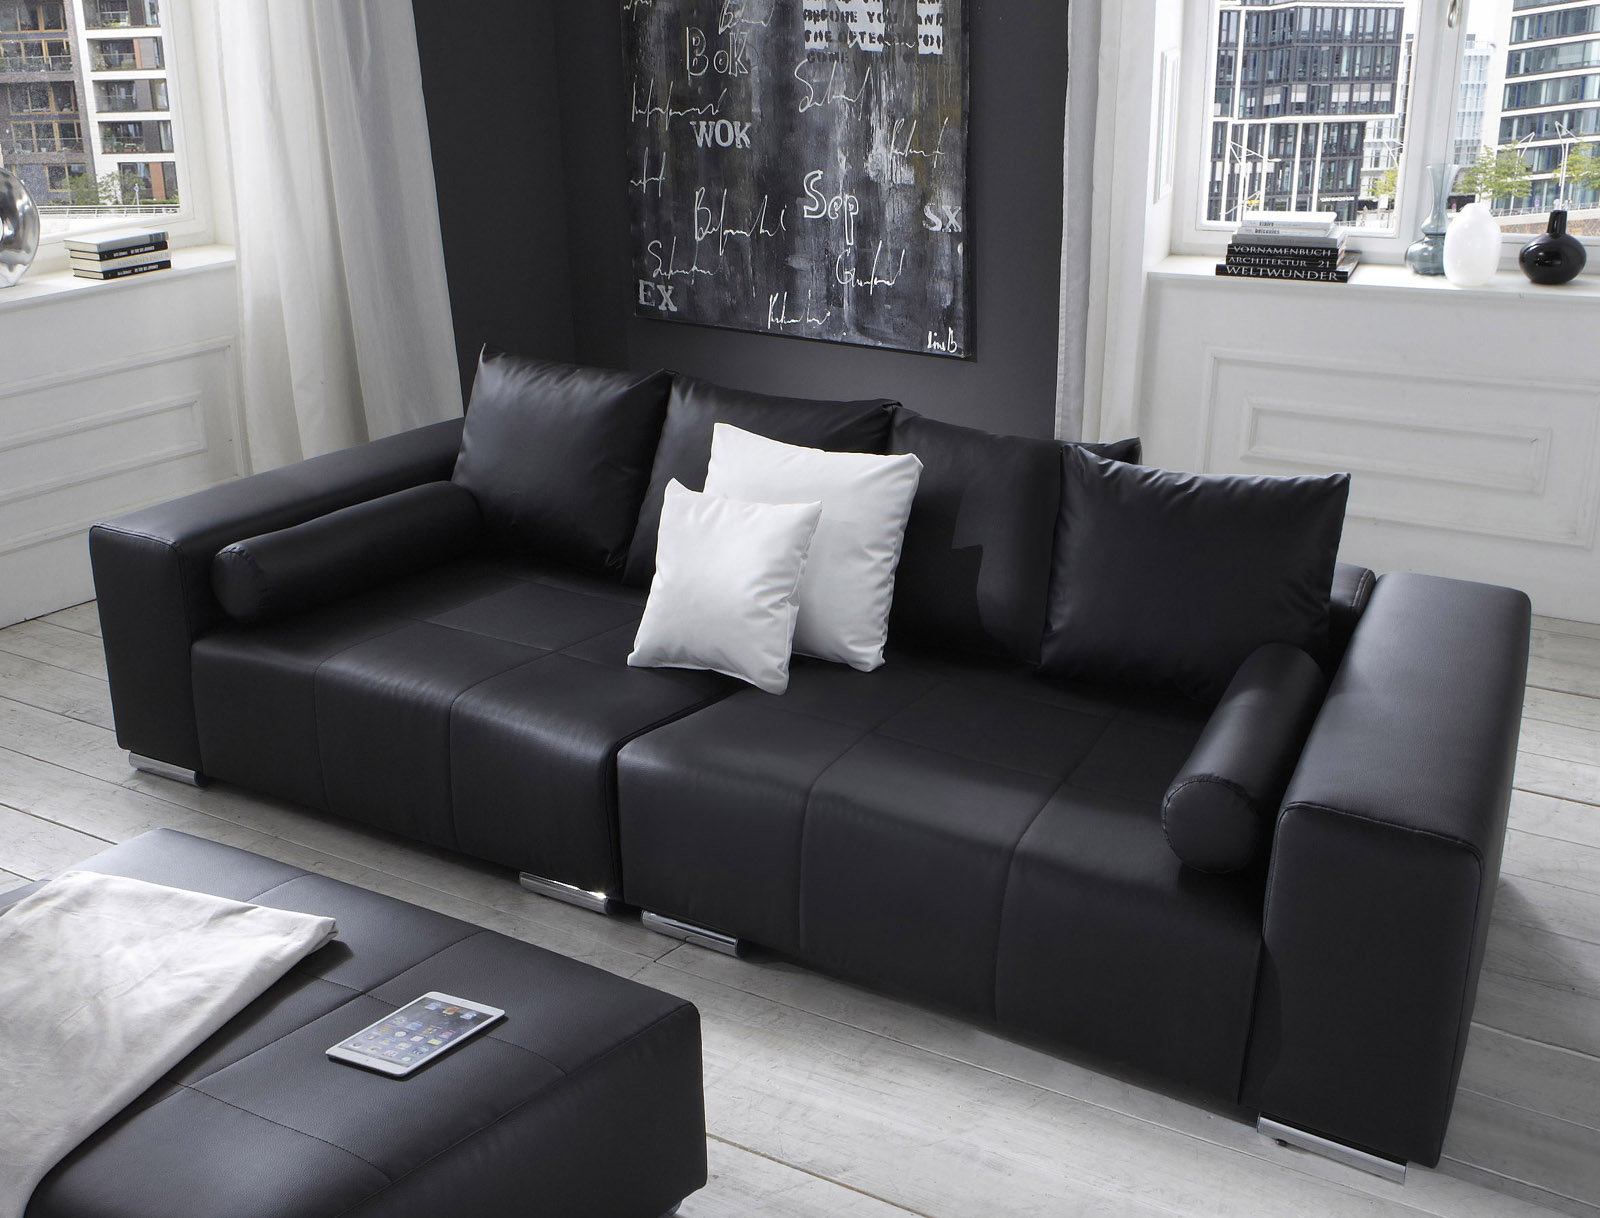 sam big sofa schwarz 290 cm hocker optional jupiter. Black Bedroom Furniture Sets. Home Design Ideas